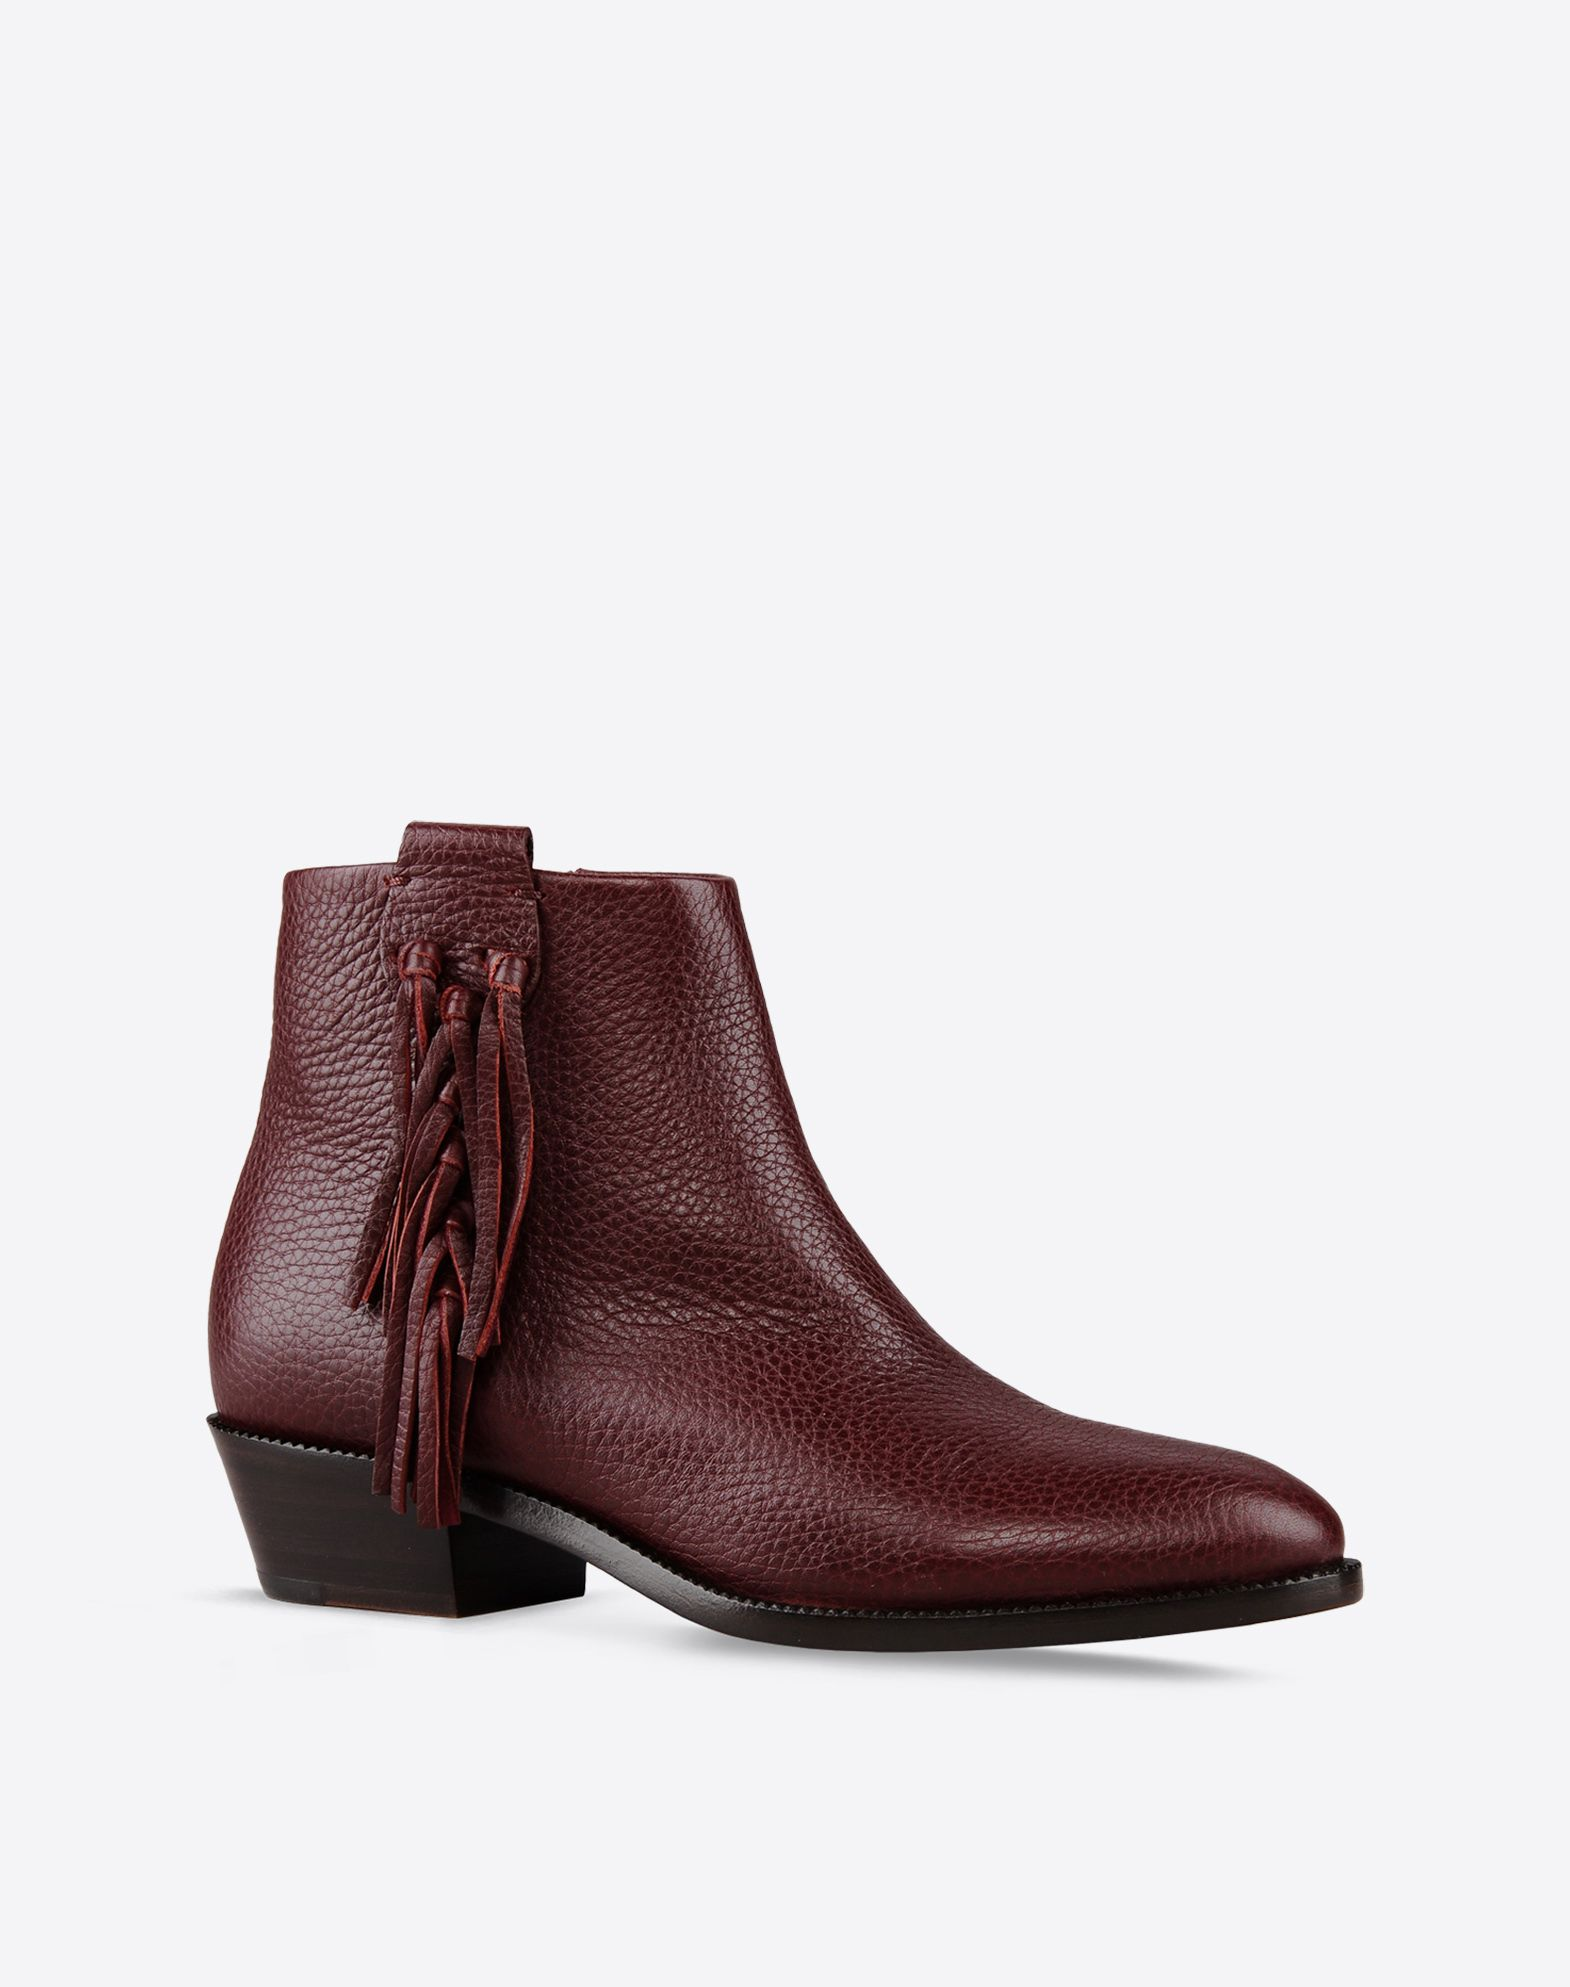 VALENTINO Textured leather Solid color Inner zip closure Leather sole Contrasting applications Round toeline Western heel  44585057ja